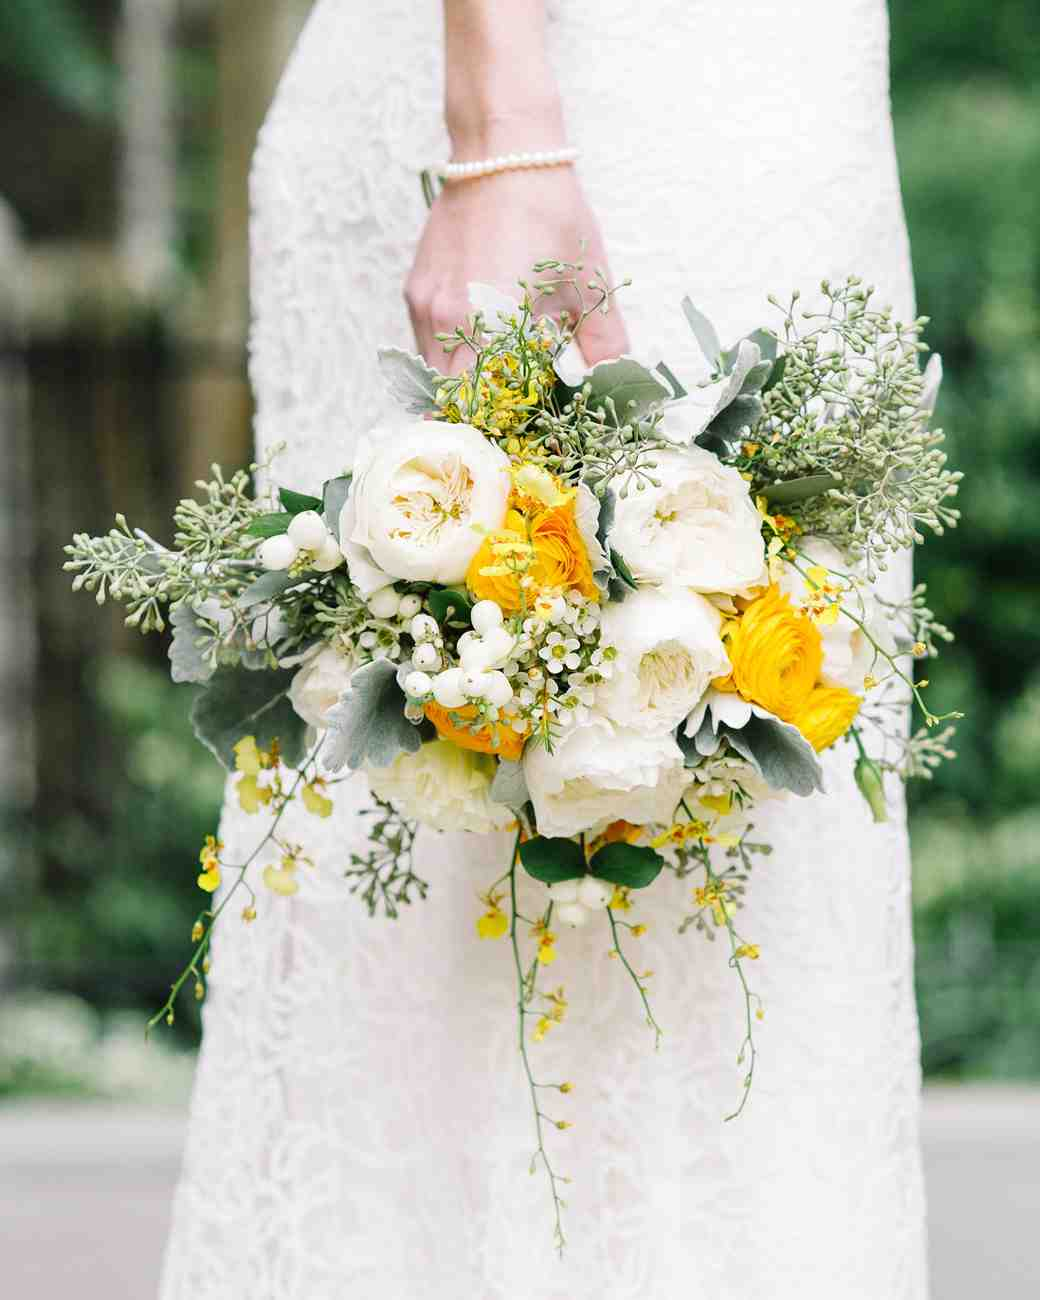 Flower Wedding Bouquet: 31 Colorful Wedding Bouquets